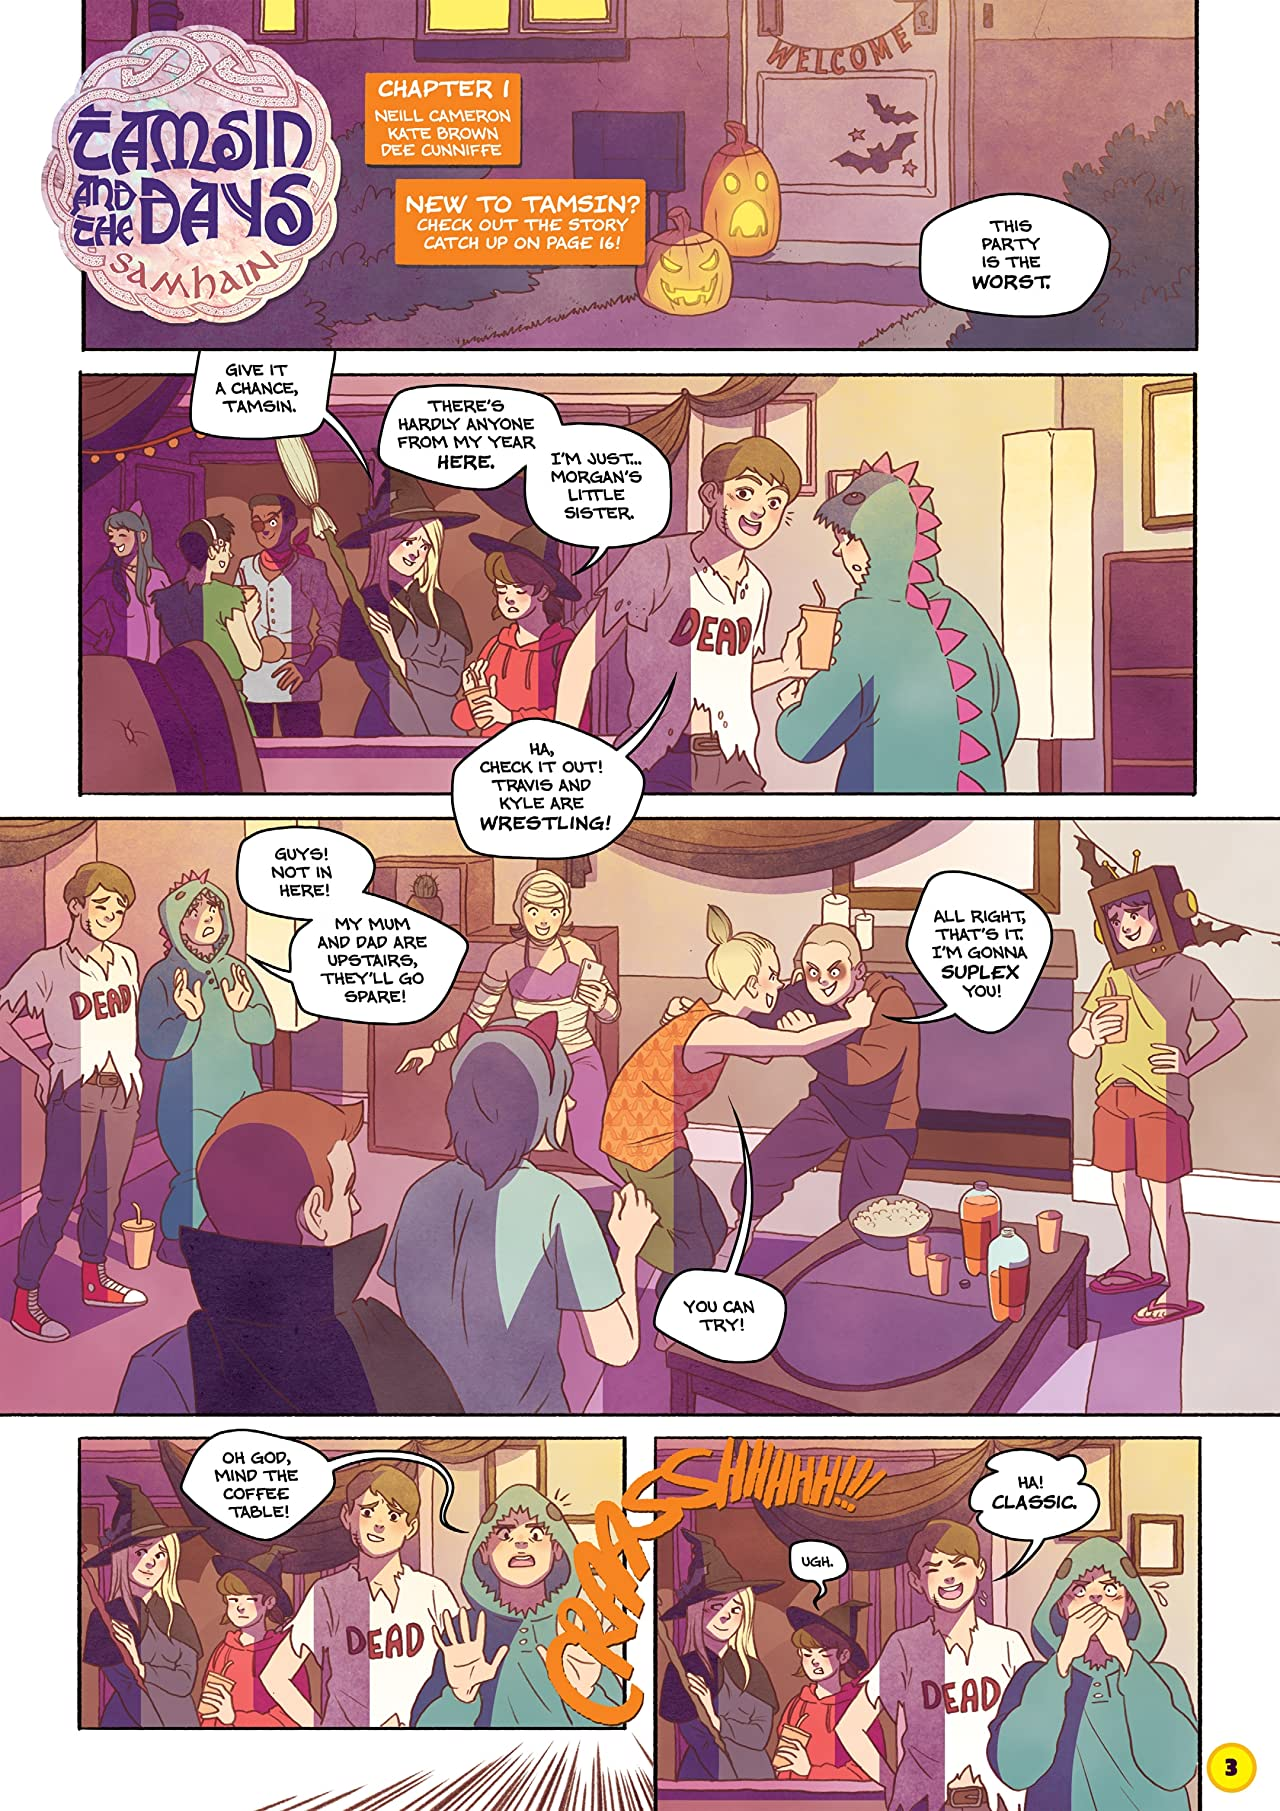 The Phoenix #293: The Weekly Story Comic